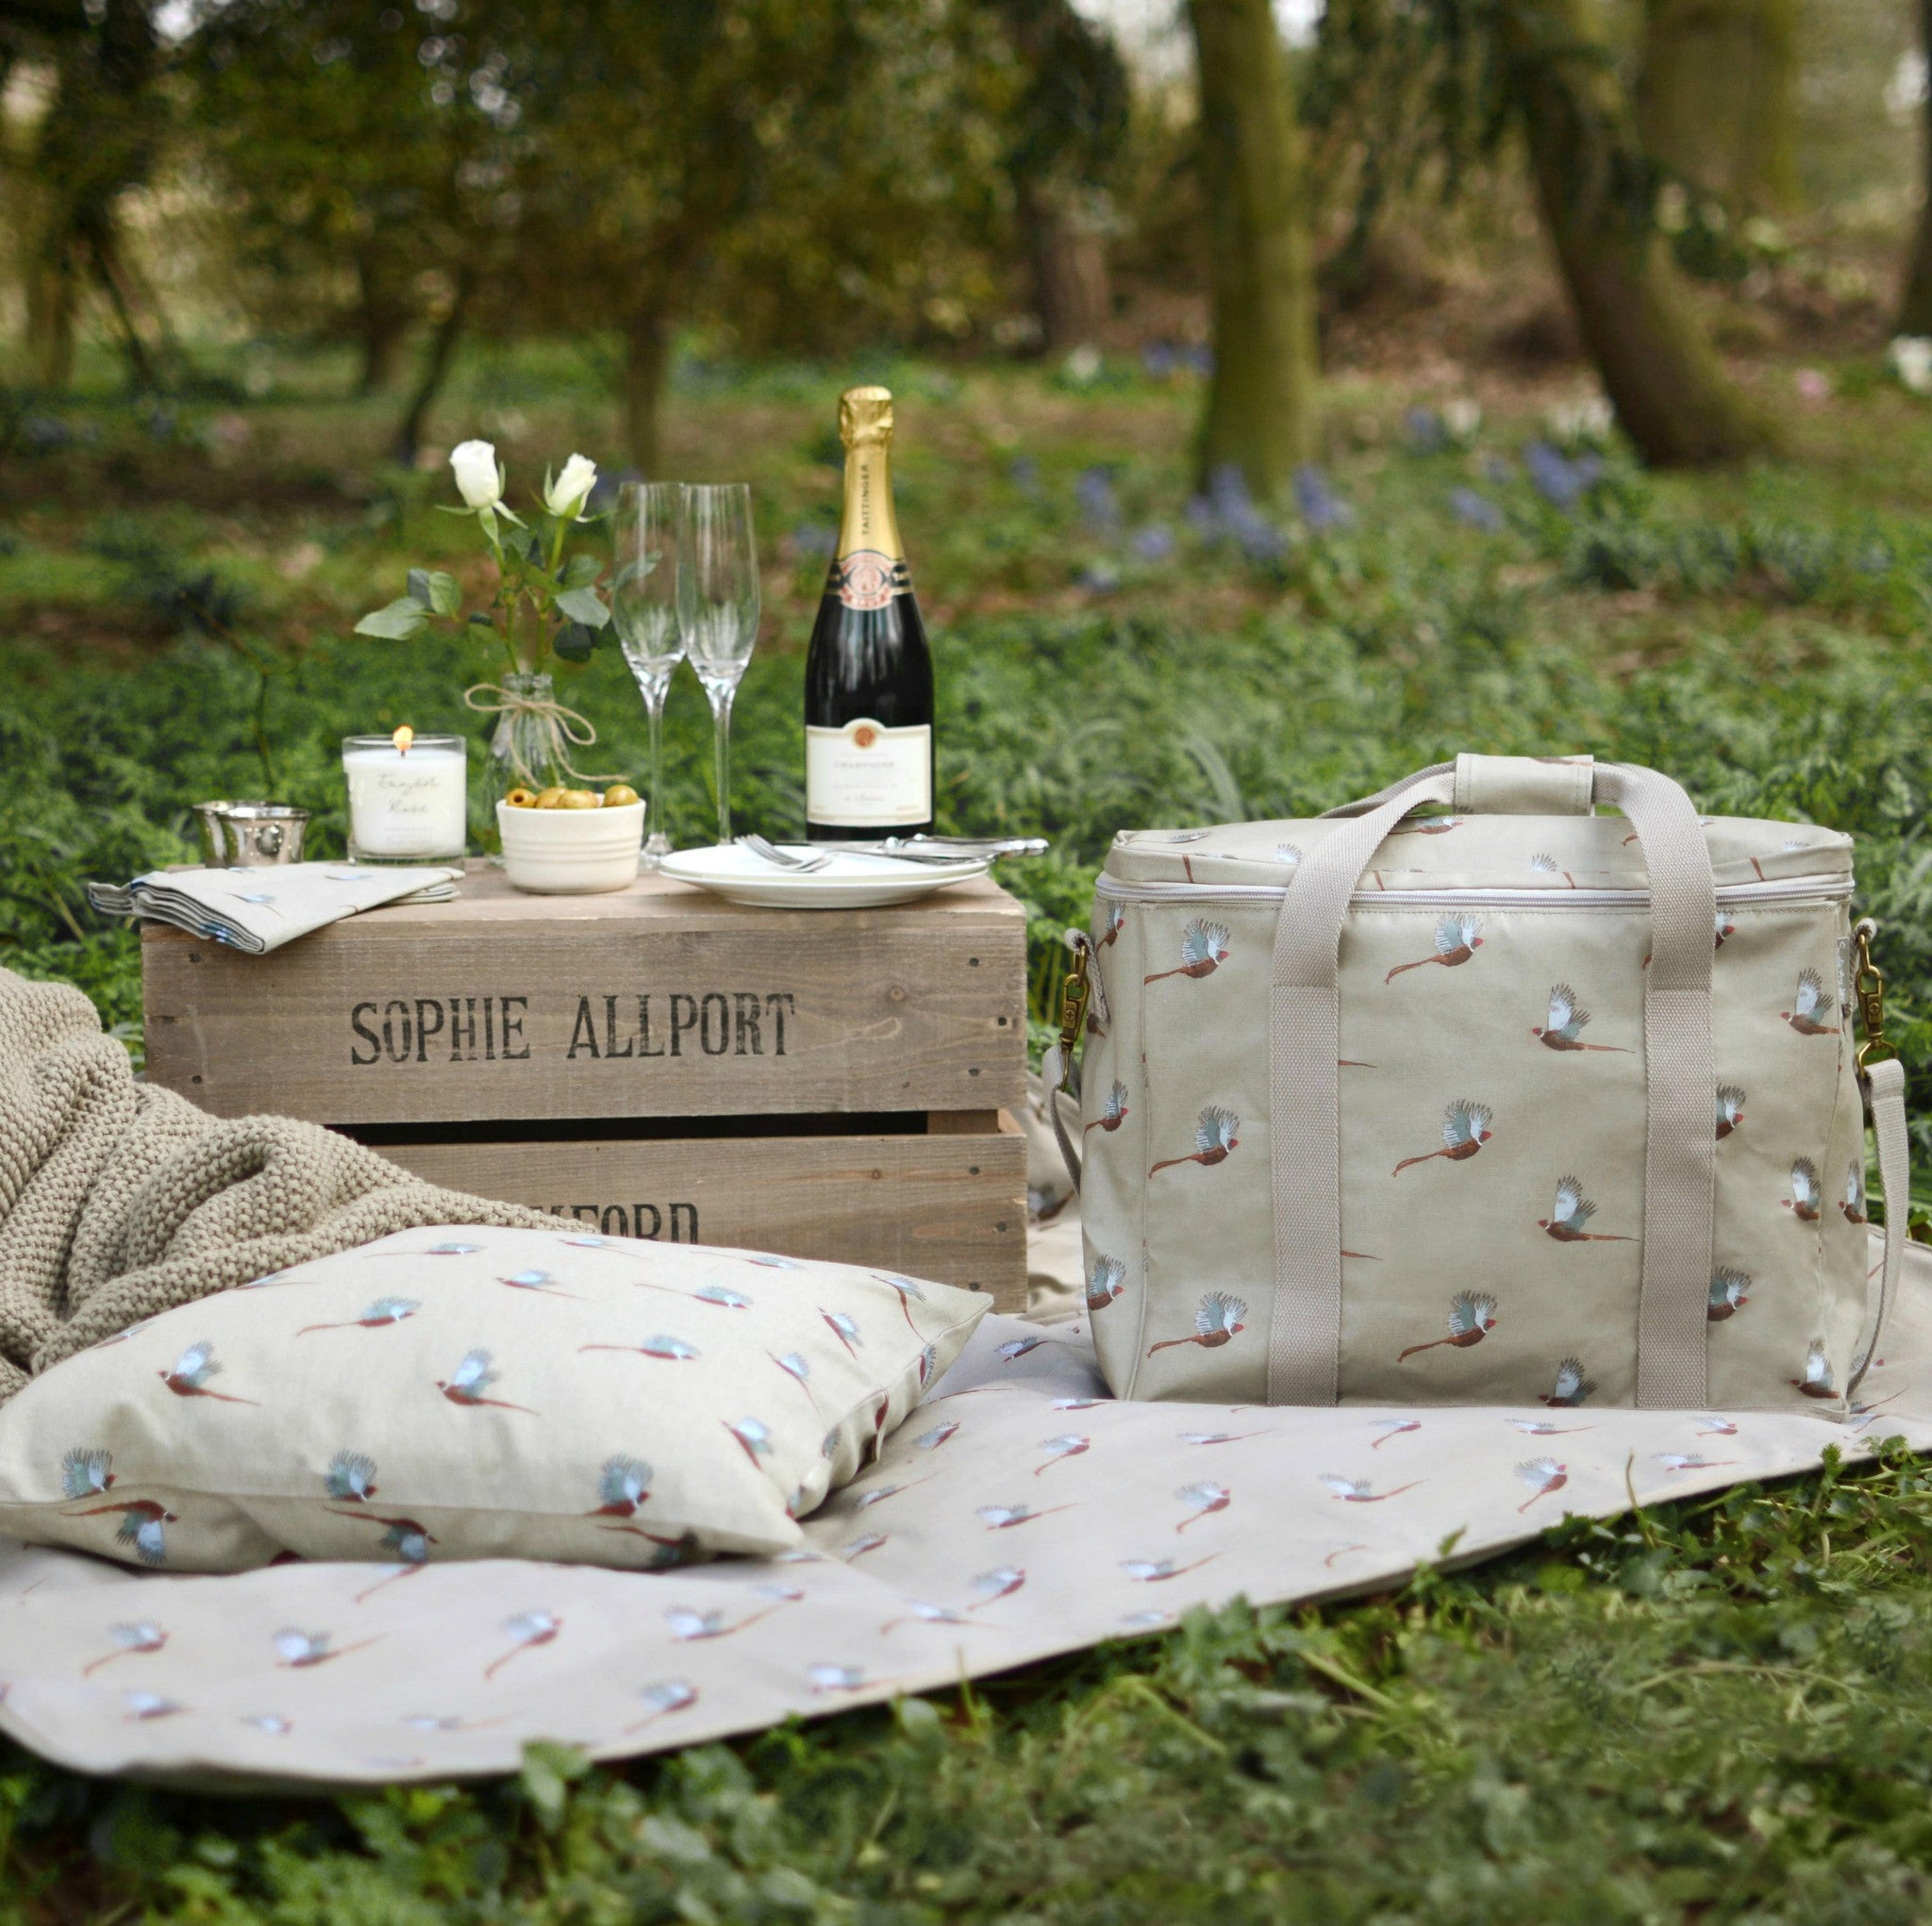 Picnic Blanket by Sophie Allport - Dales Country Interiors